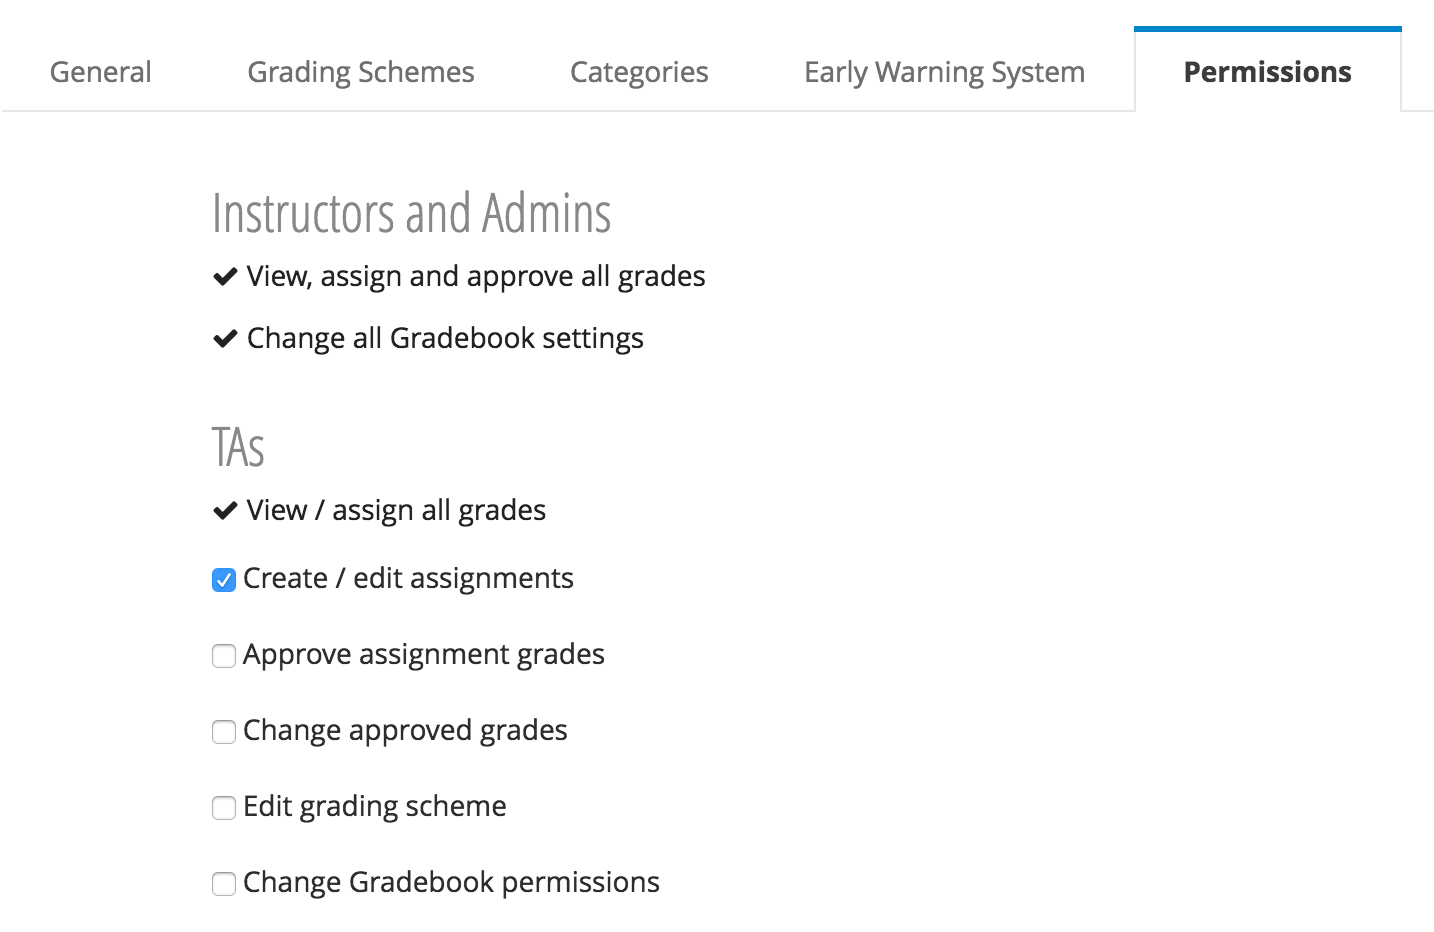 Approved grades permissions